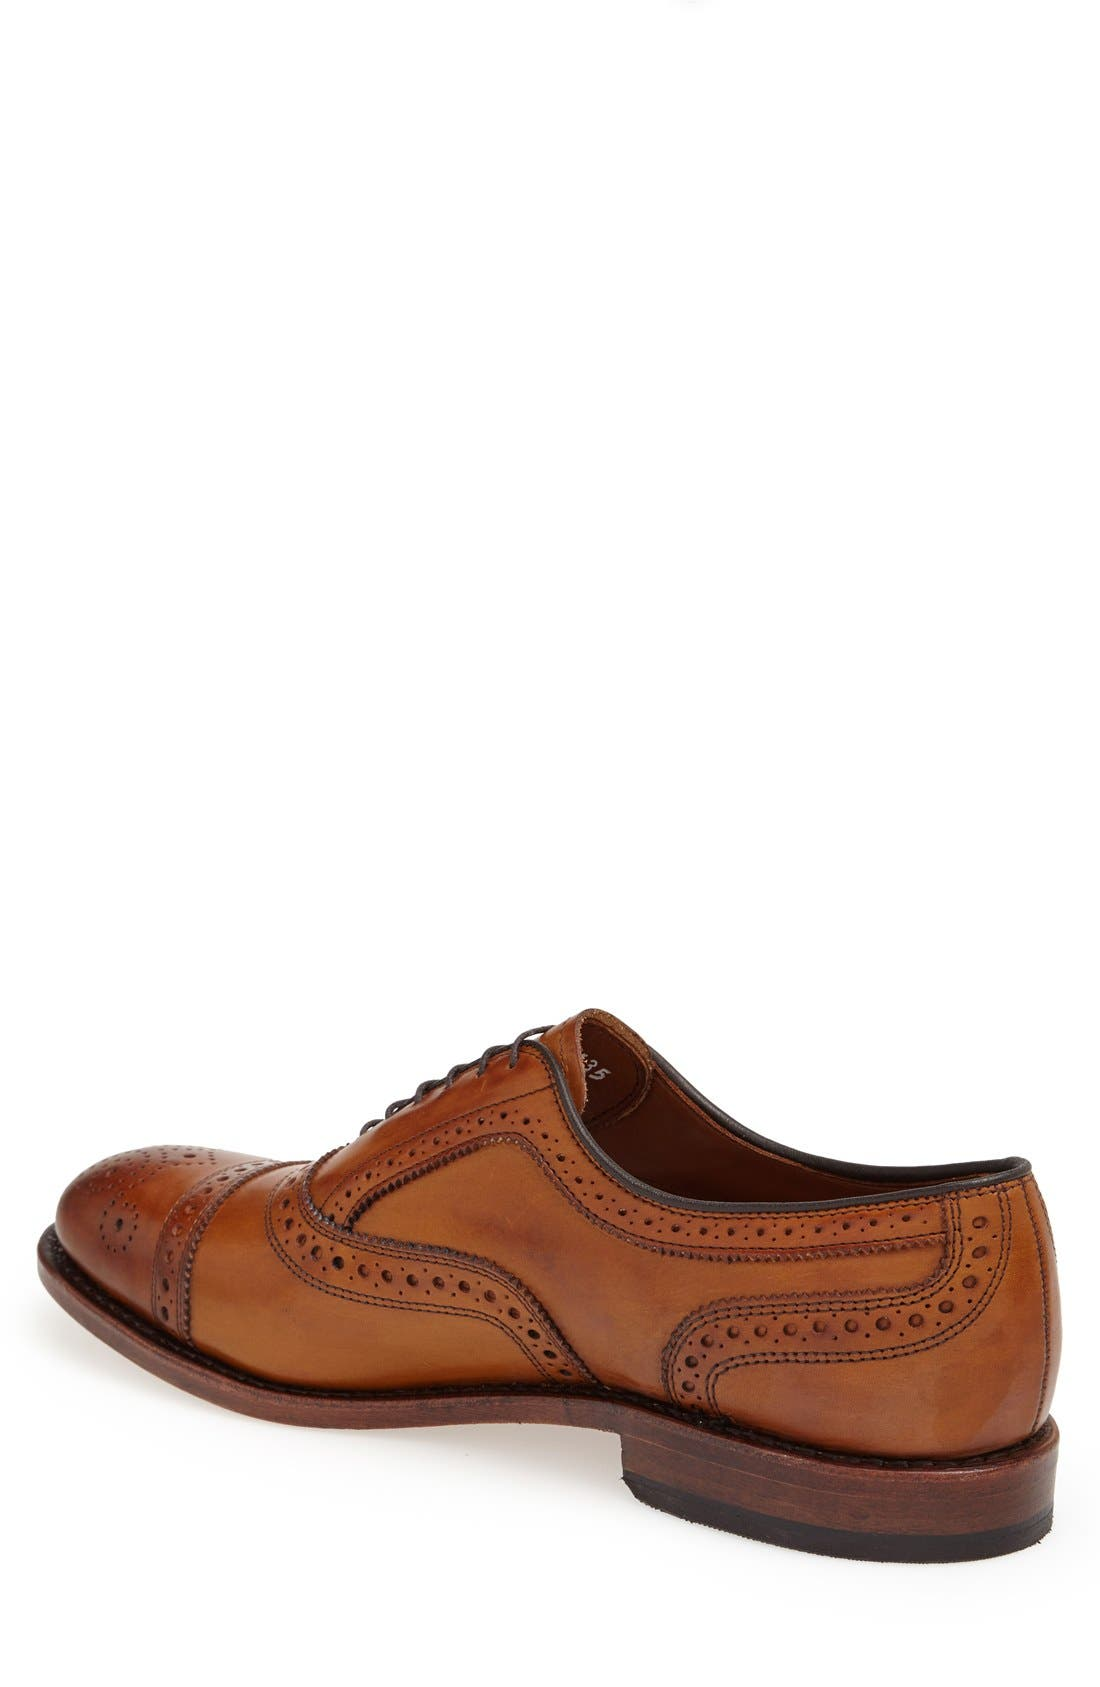 ALLEN EDMONDS, 'Strand' Cap Toe Oxford, Alternate thumbnail 2, color, WALNUT LEATHER